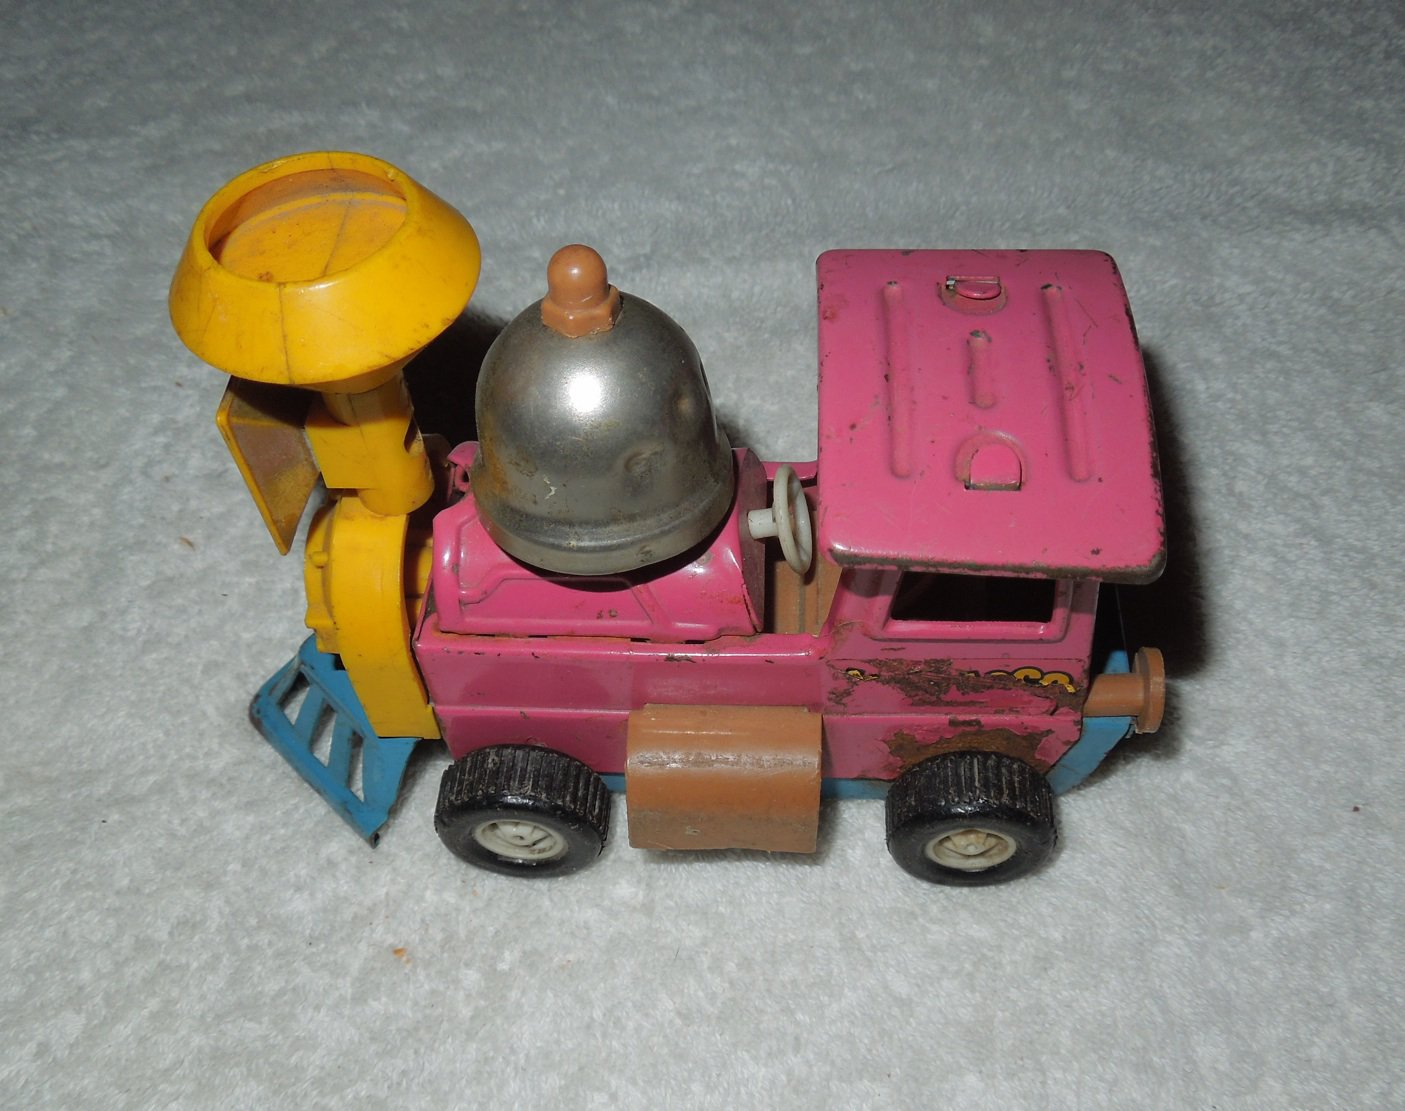 Topper - Metal Toy Train With Bell - Purple - Motor Not Included - Vintage